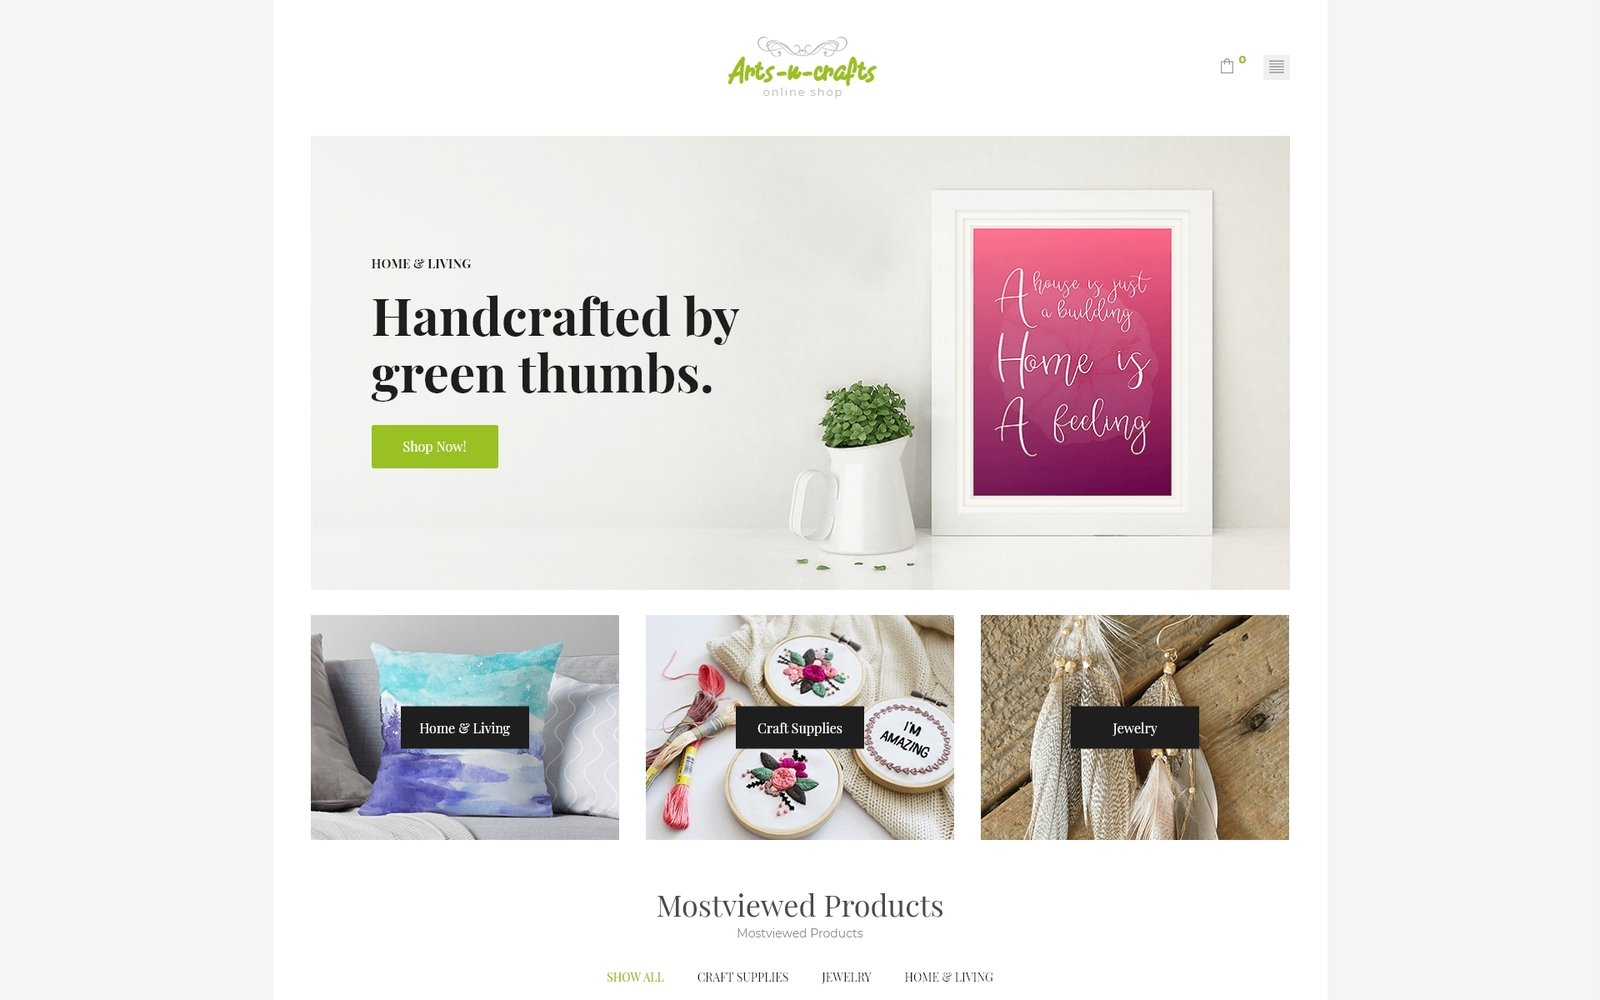 Arts-n-crafts - Handmade Art WooCommerce Theme